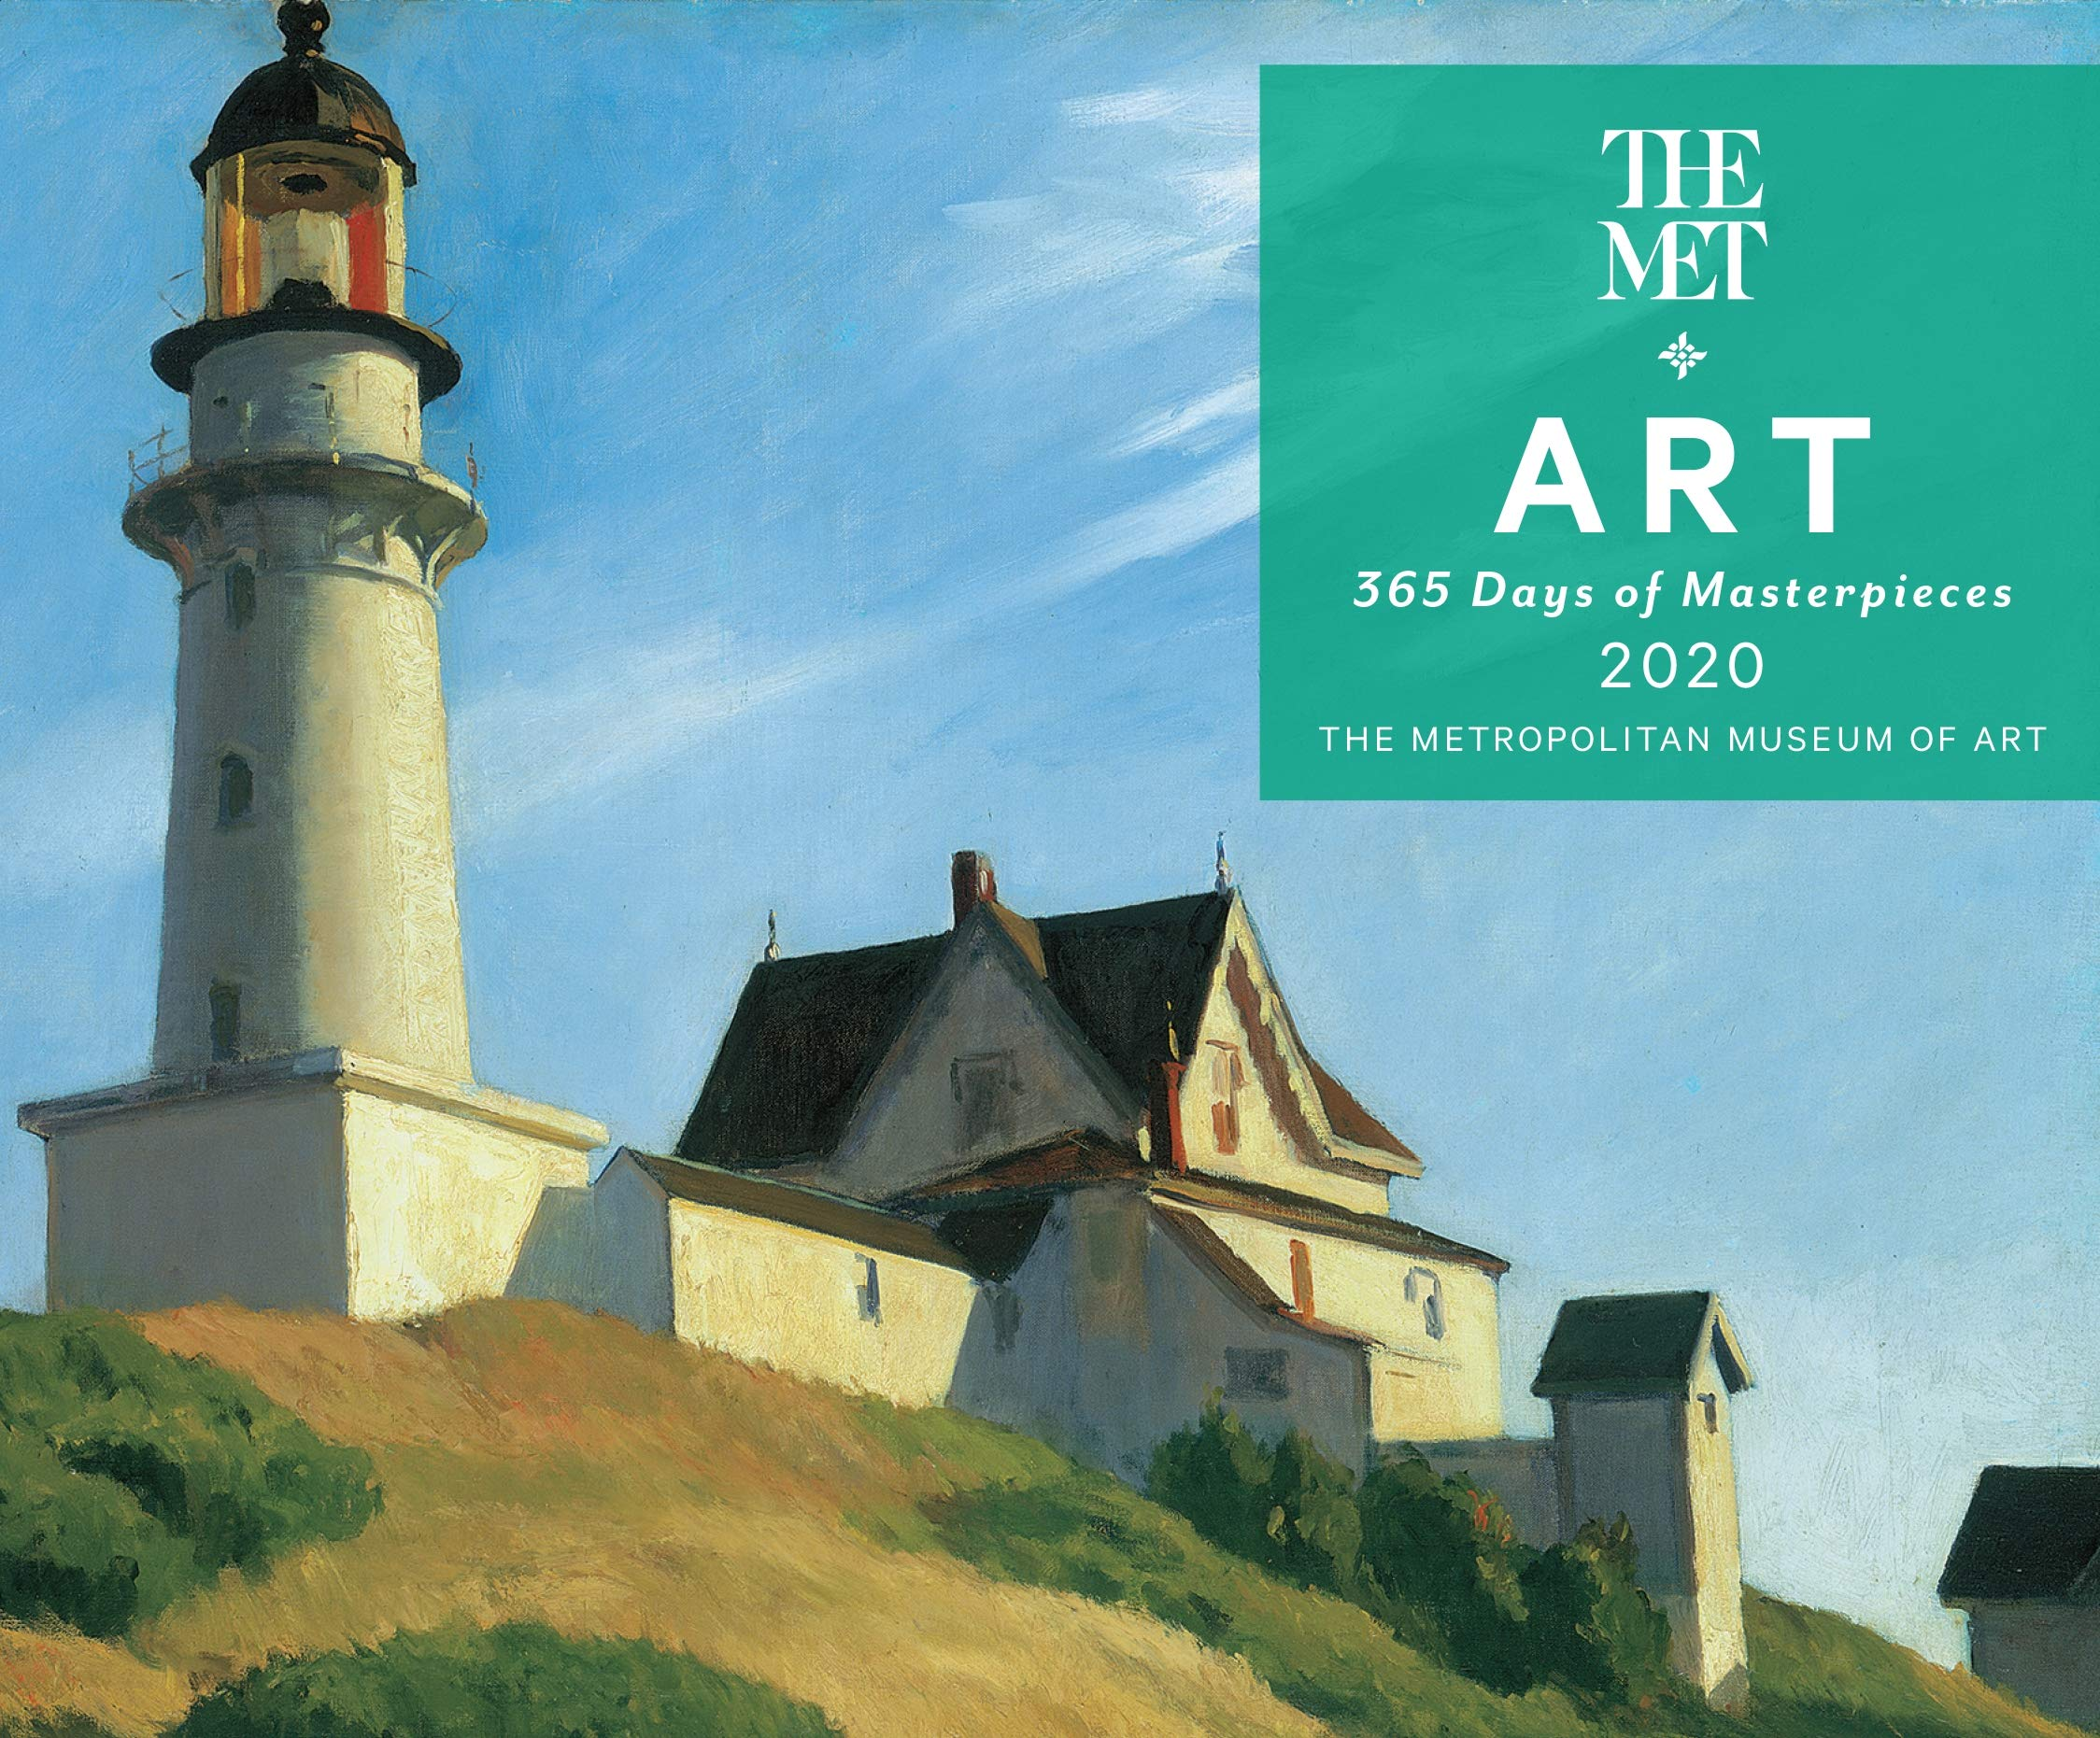 Art 365 Days Of Masterpieces 2020 Desk Calendar The Metropolitan Museum Of Art 9781419737794 Amazon Com Books